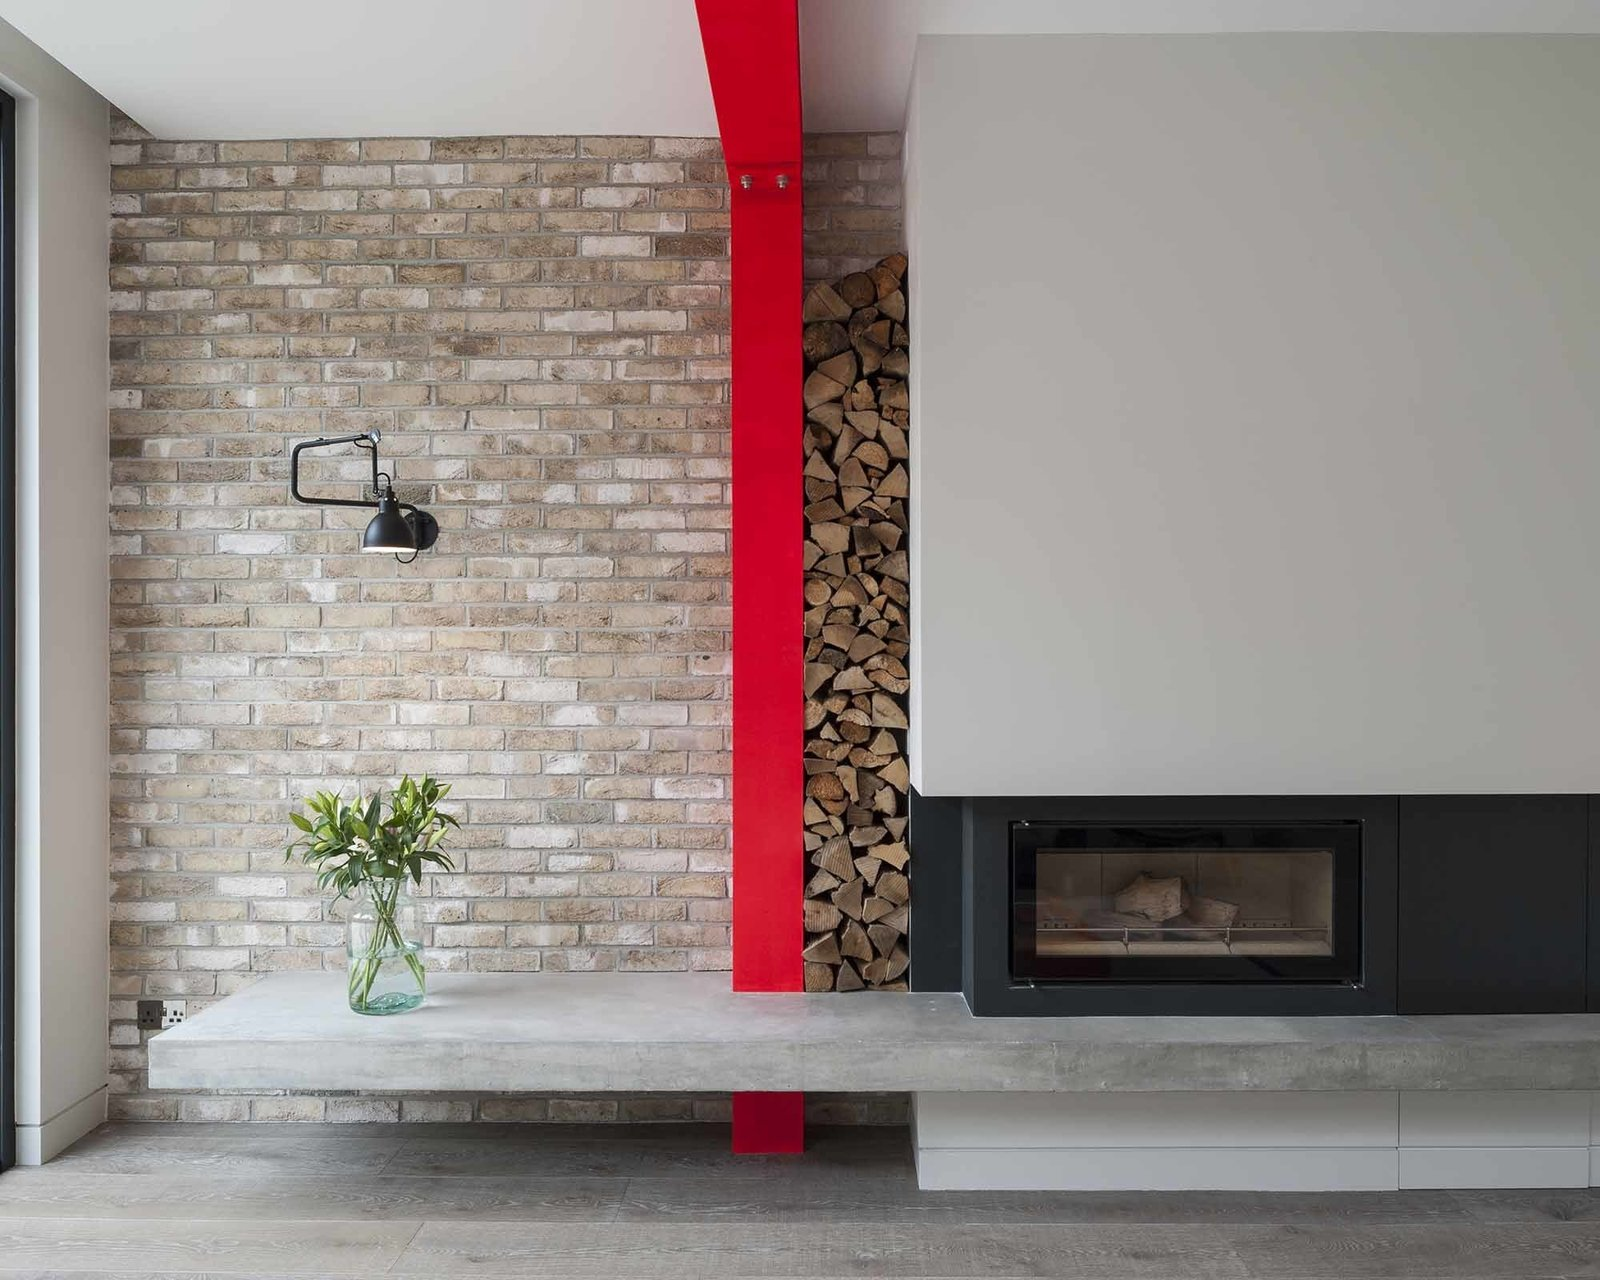 The overhanging concrete plinth acts as a hearth or, as Tigg imagines it, a sort of contemporary inglenook. Wood piles neatly between the beam and wall. The fireplace, a Stovax Riva 2, is flanked by a Lampe Gras wall lamp.  97+ Modern Fireplace Ideas by Dwell from A London Town House Renovation Beaming with Personality